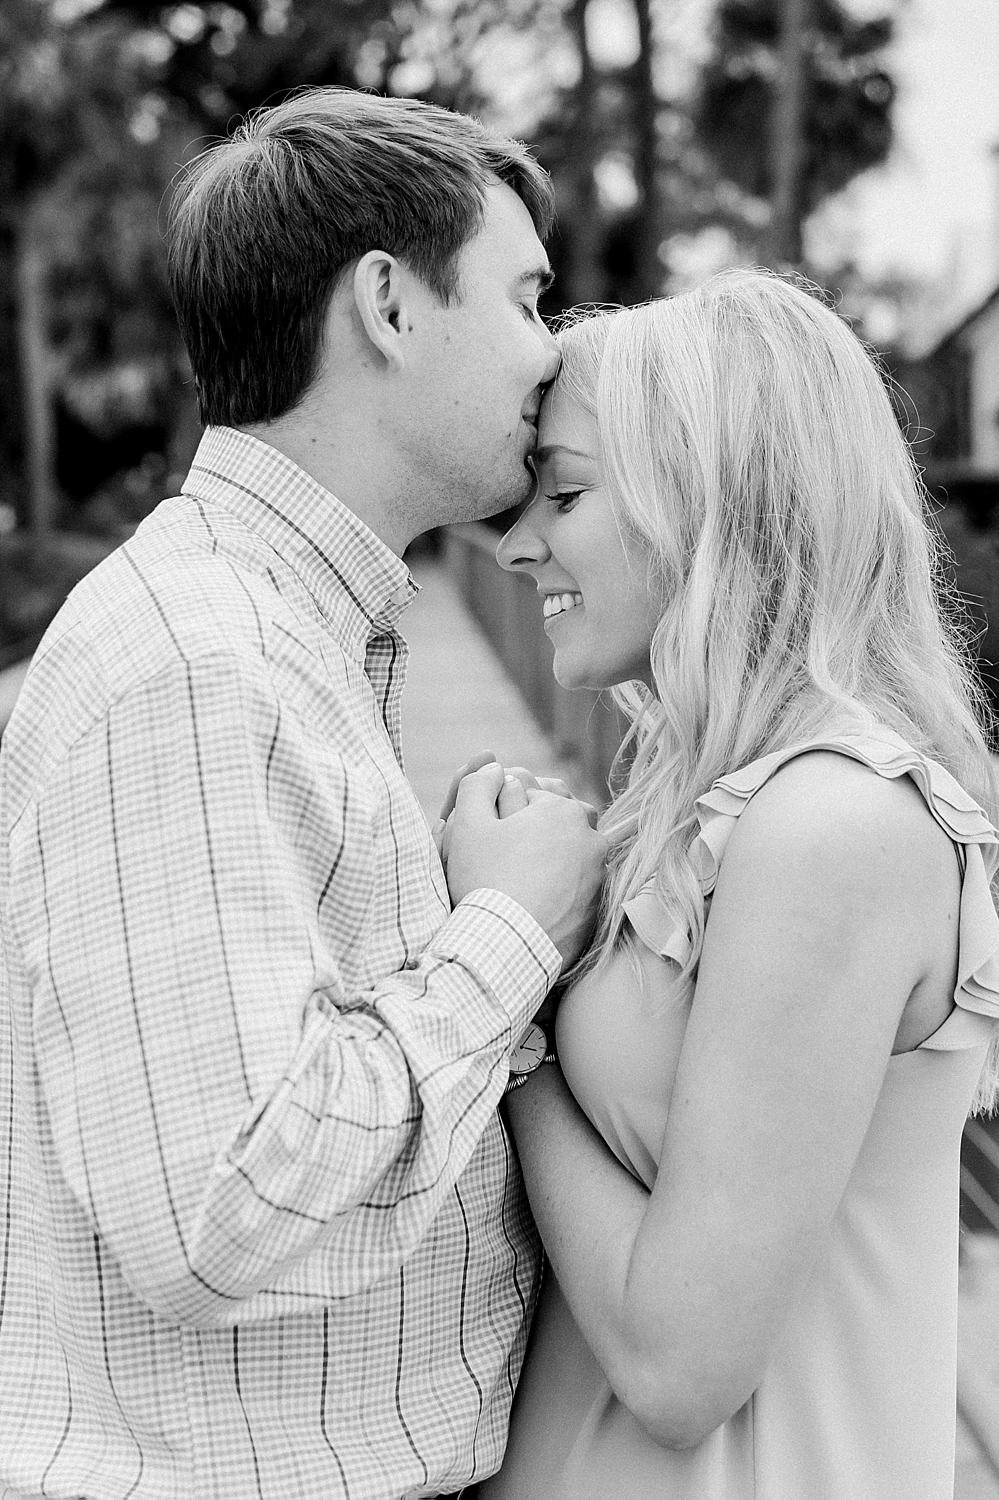 palmetto-bluff-engagement-session-jb-marie-photography